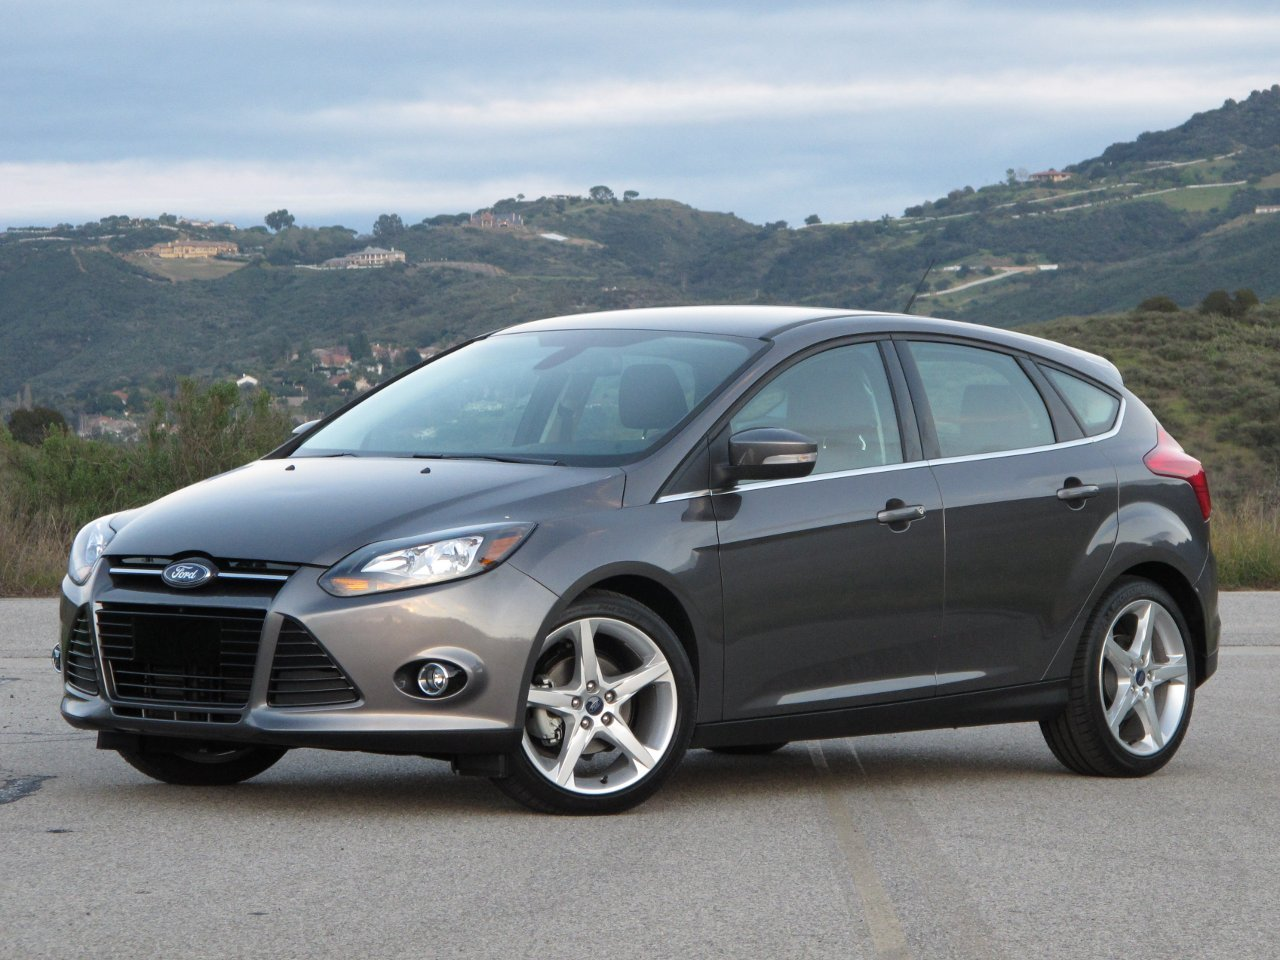 2012 Ford Focus Titanium Fordfocussilverkonigtraffikblack2 Rides Fuse Boxes Styling 2 2008 Box Fix Cigar Lighter Auxillary 6 Price